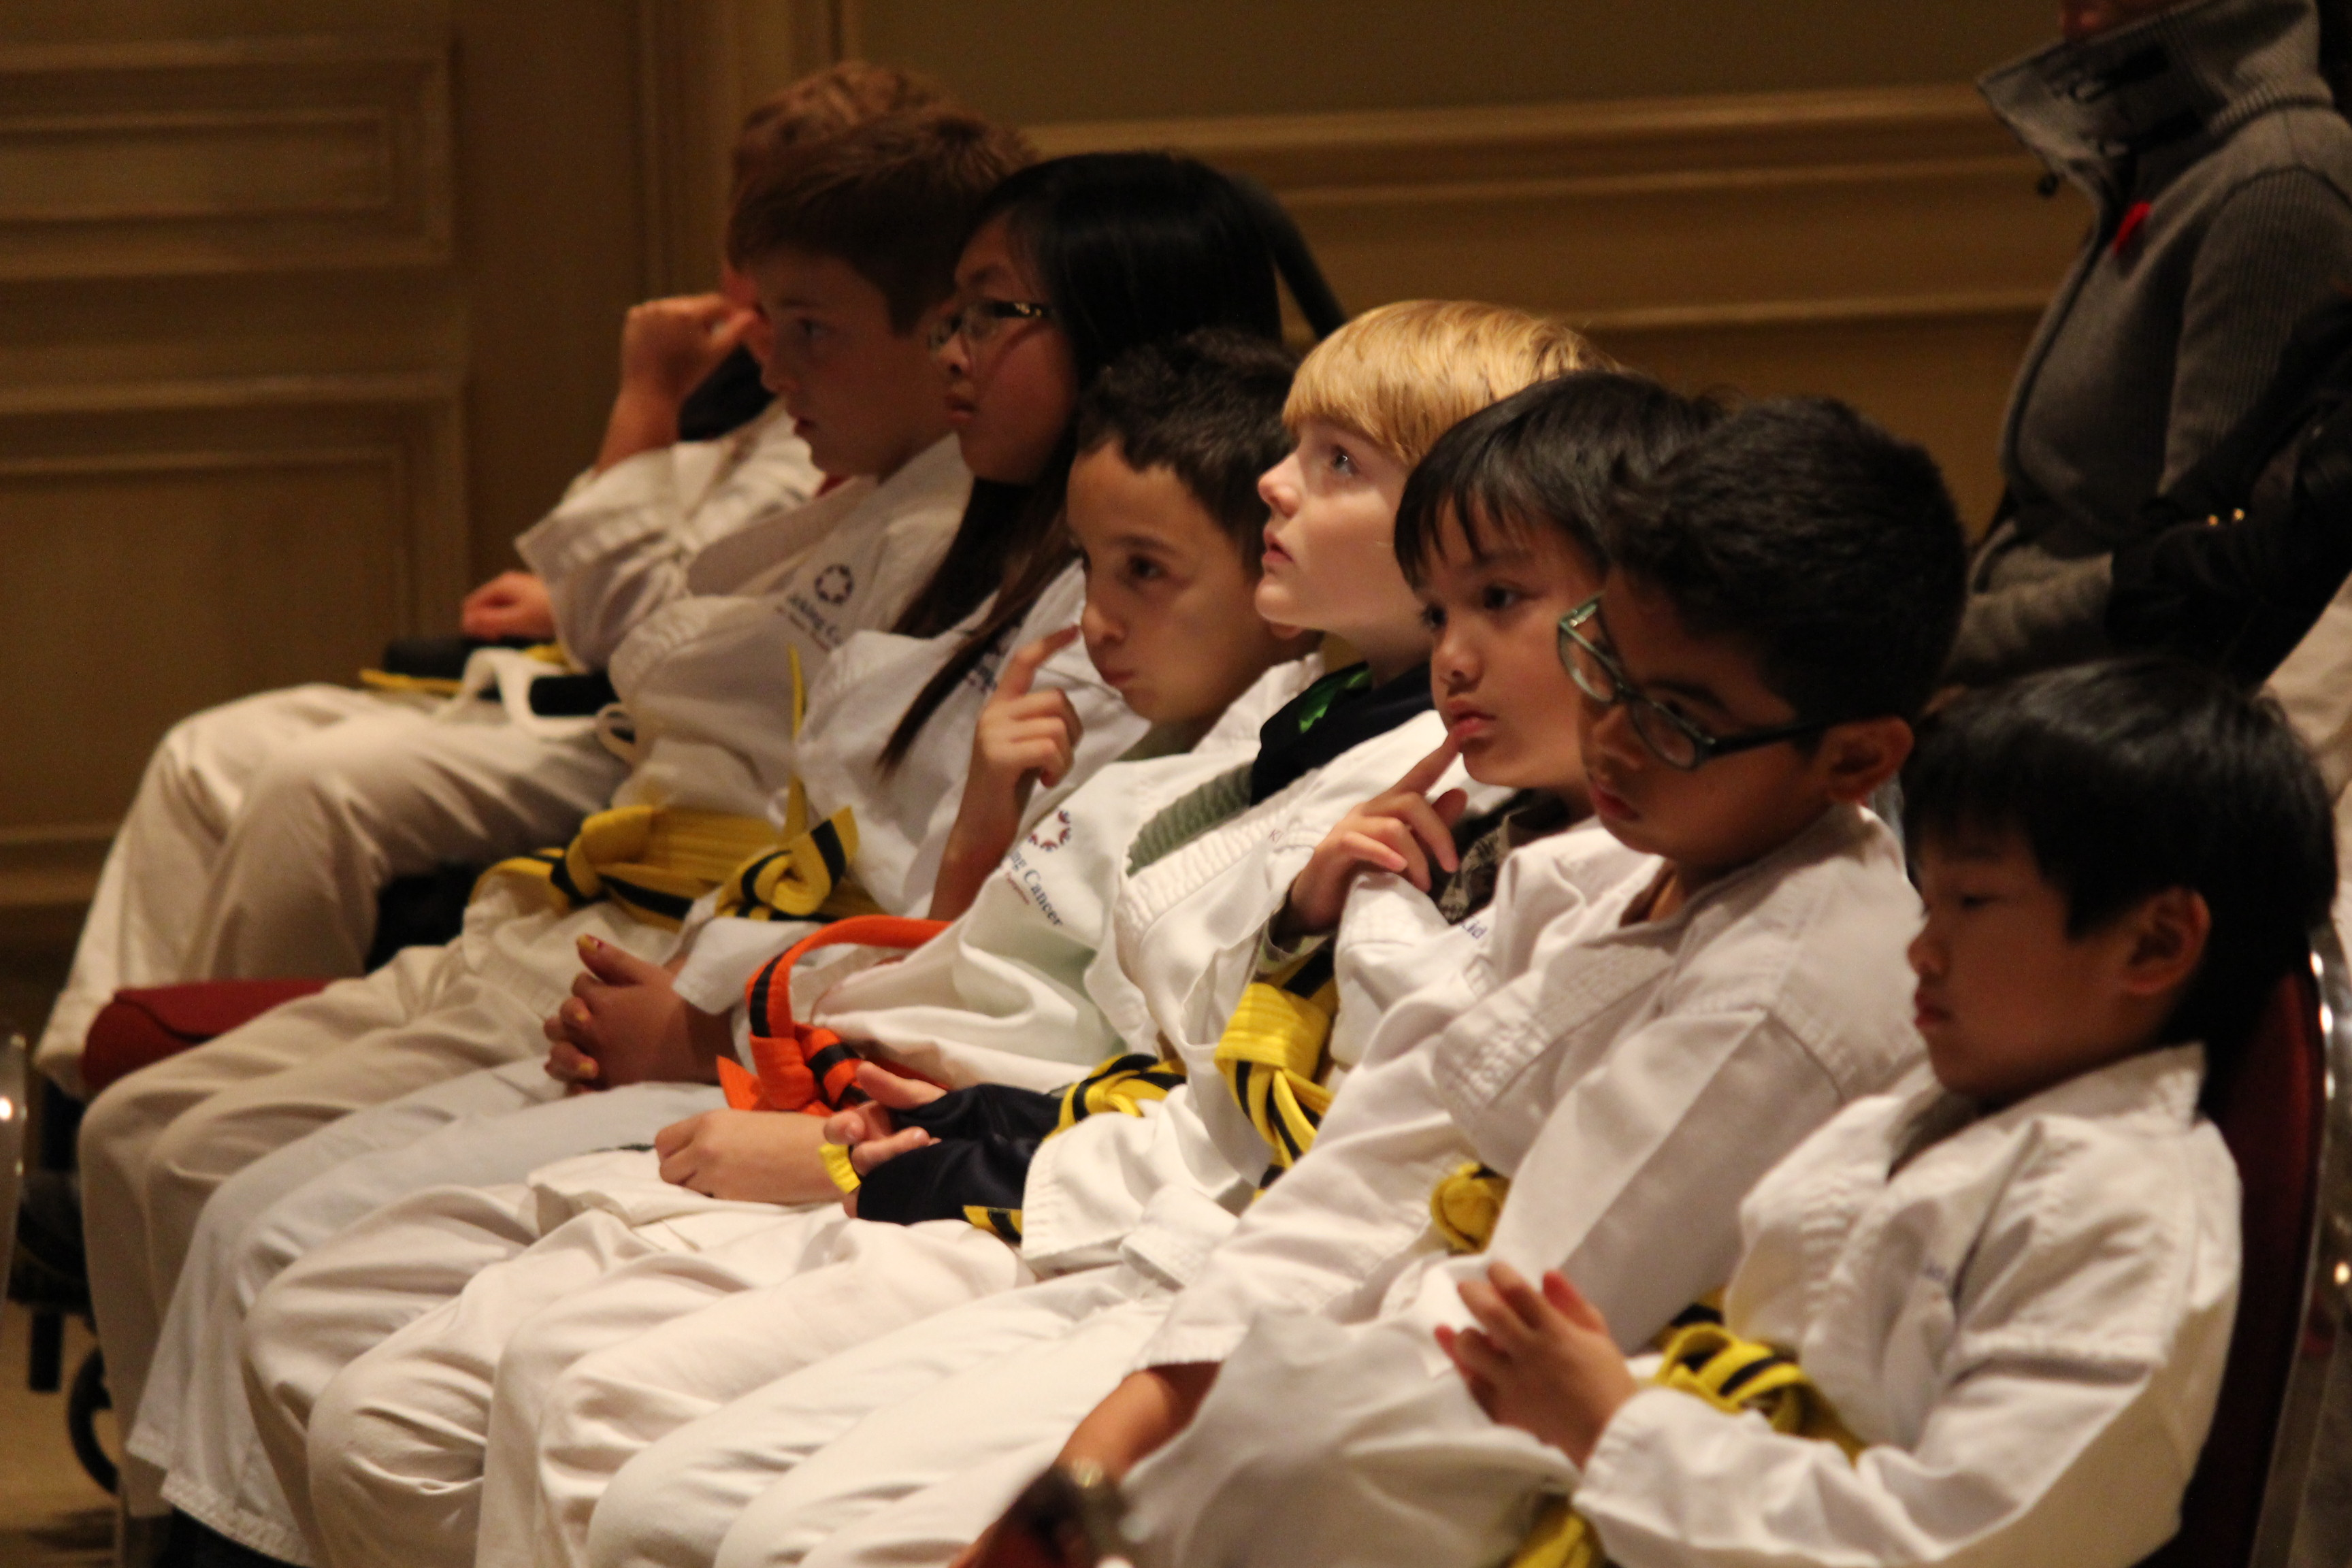 A group of children in Windsor-Essex help teach others how to manage pain through karate. (Photo by Jason Viau)